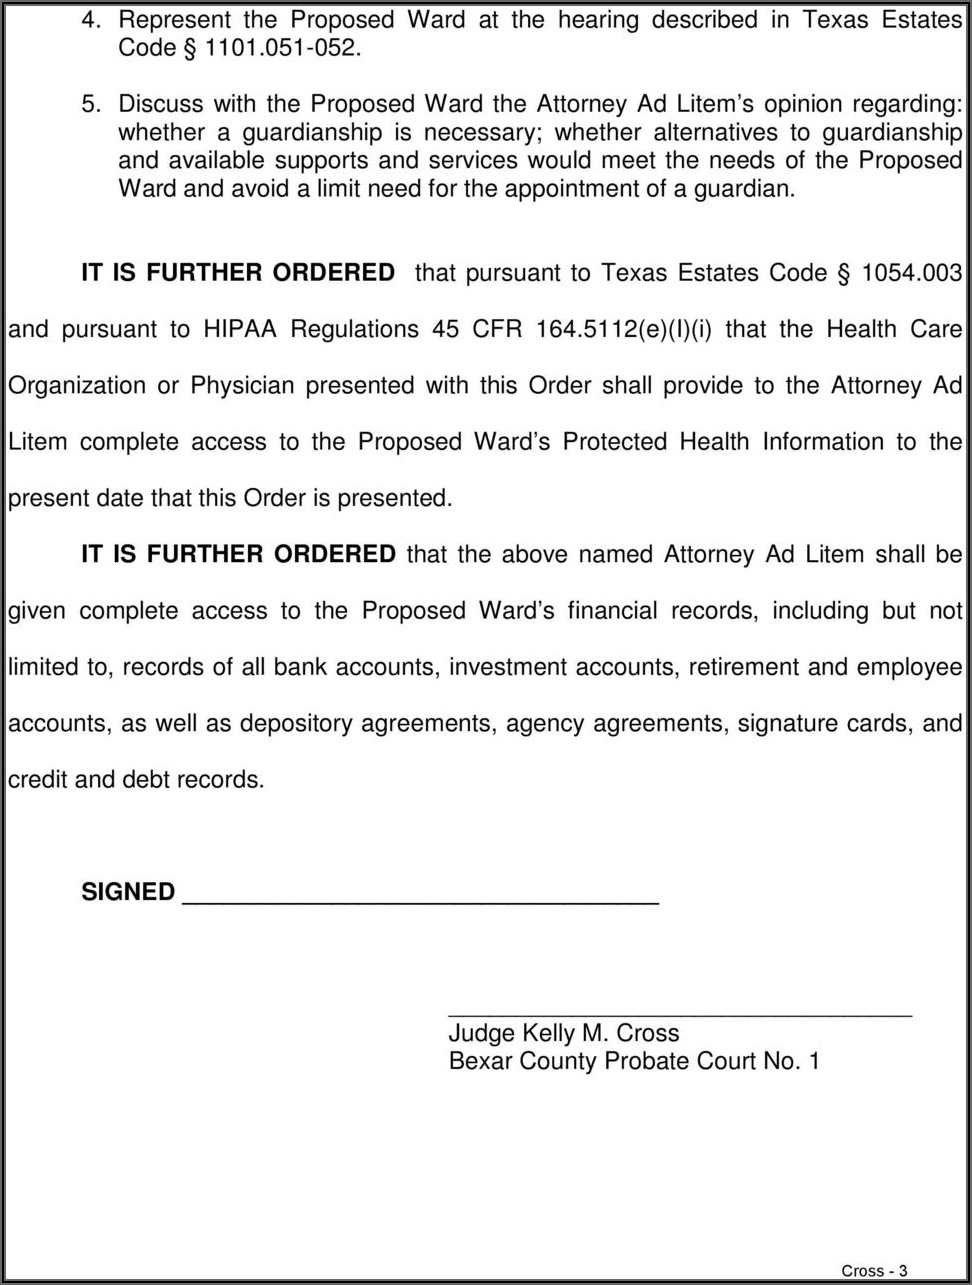 Bexar County Probate Court Forms